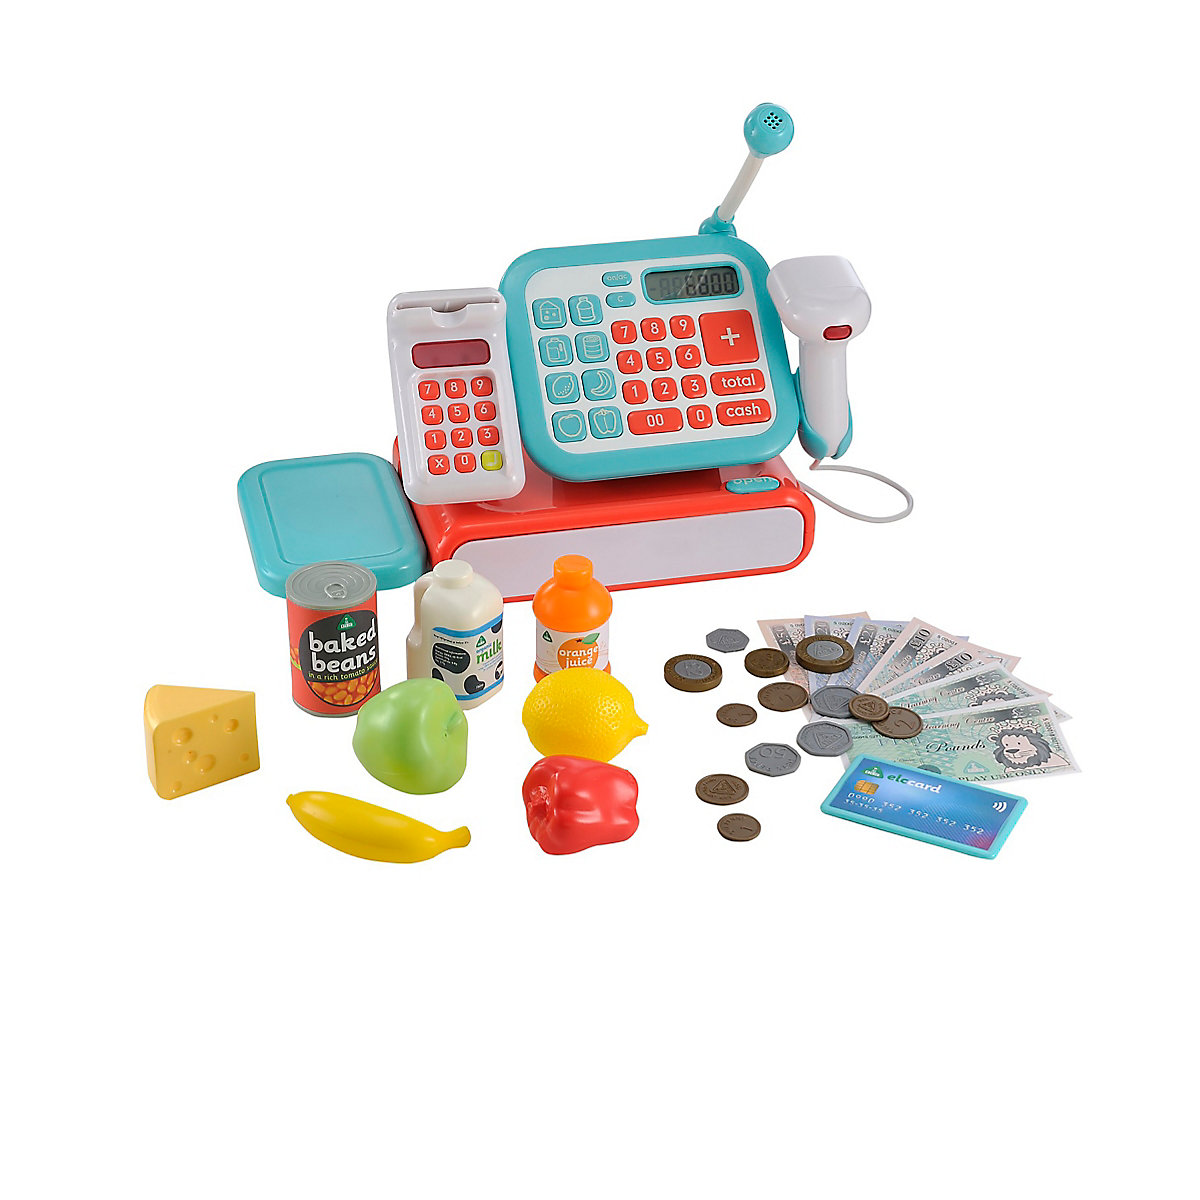 New ELC Boys and Girls Cash Register - Blue Toy From 3 years